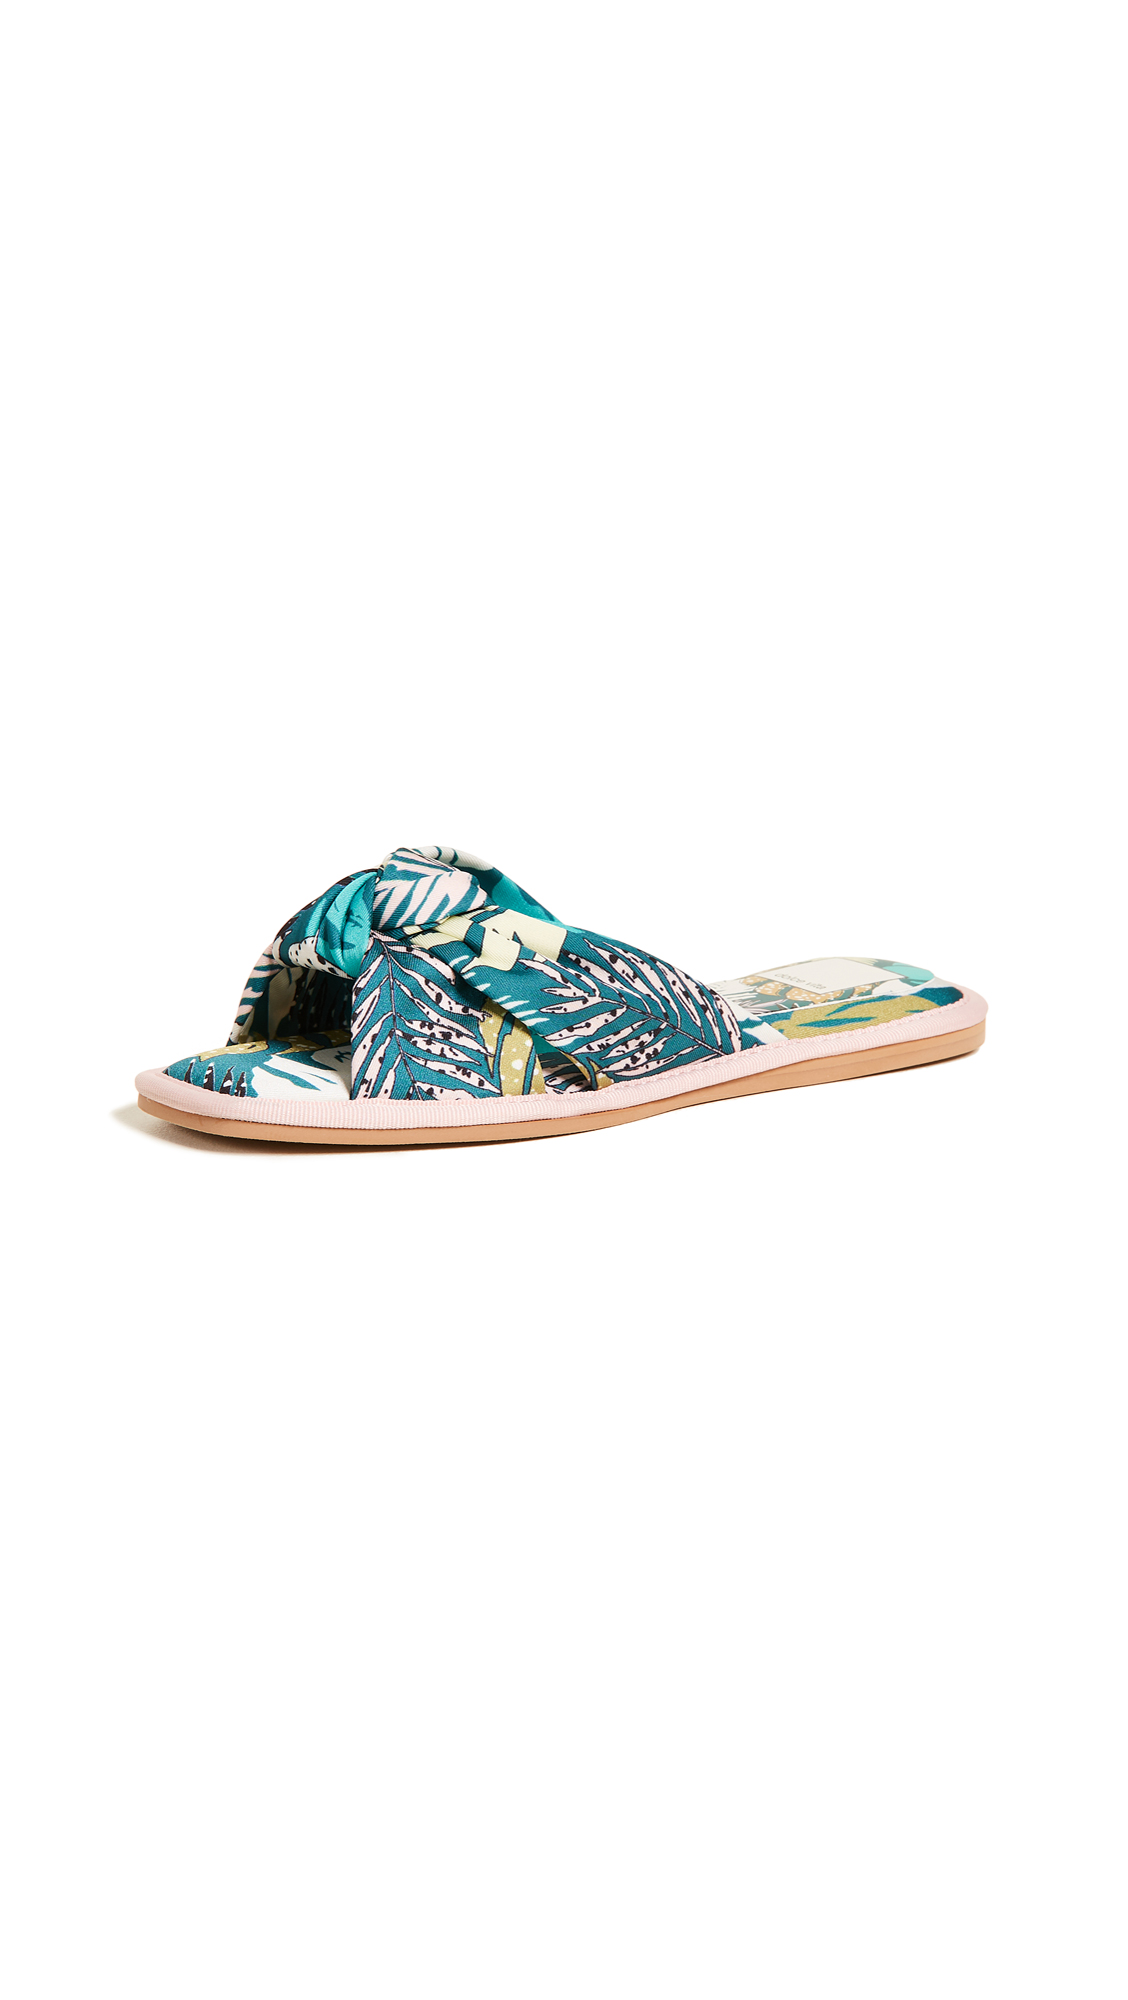 Dolce Vita Halle Slides In Green